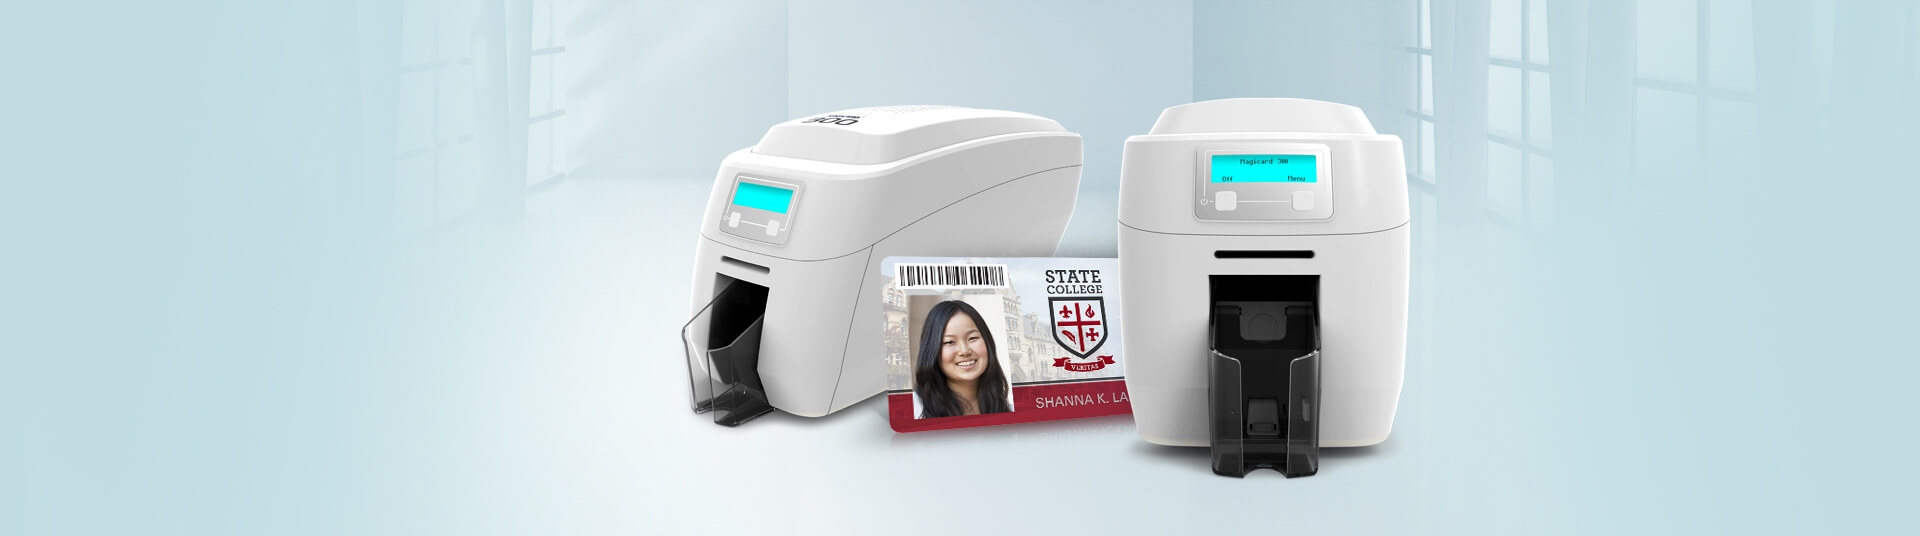 Magicard 300 ID Card Printers